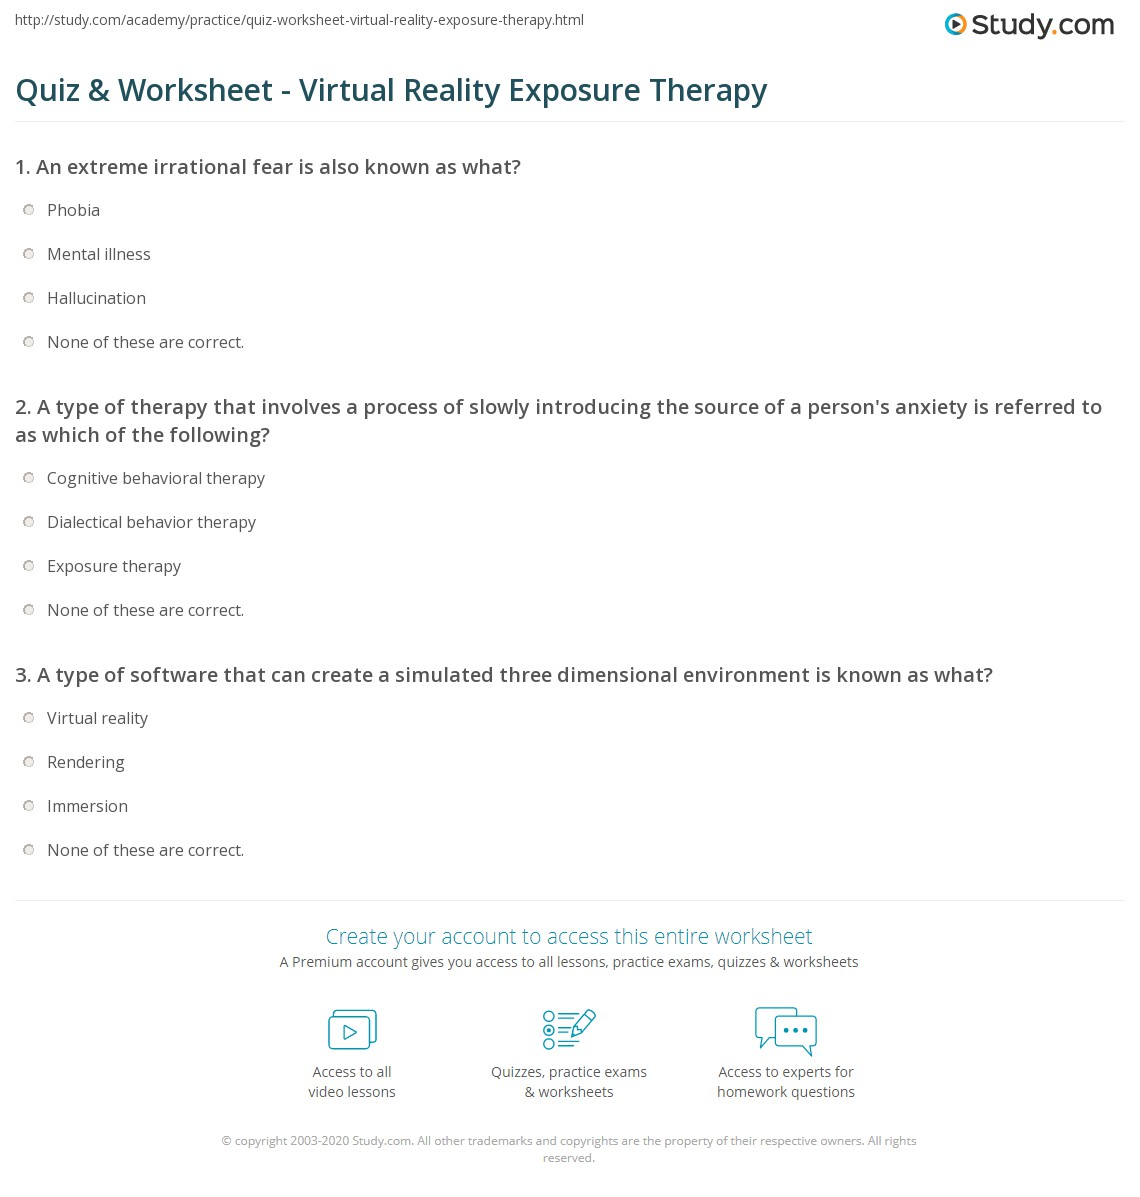 Quiz Worksheet Virtual Reality Exposure Therapy